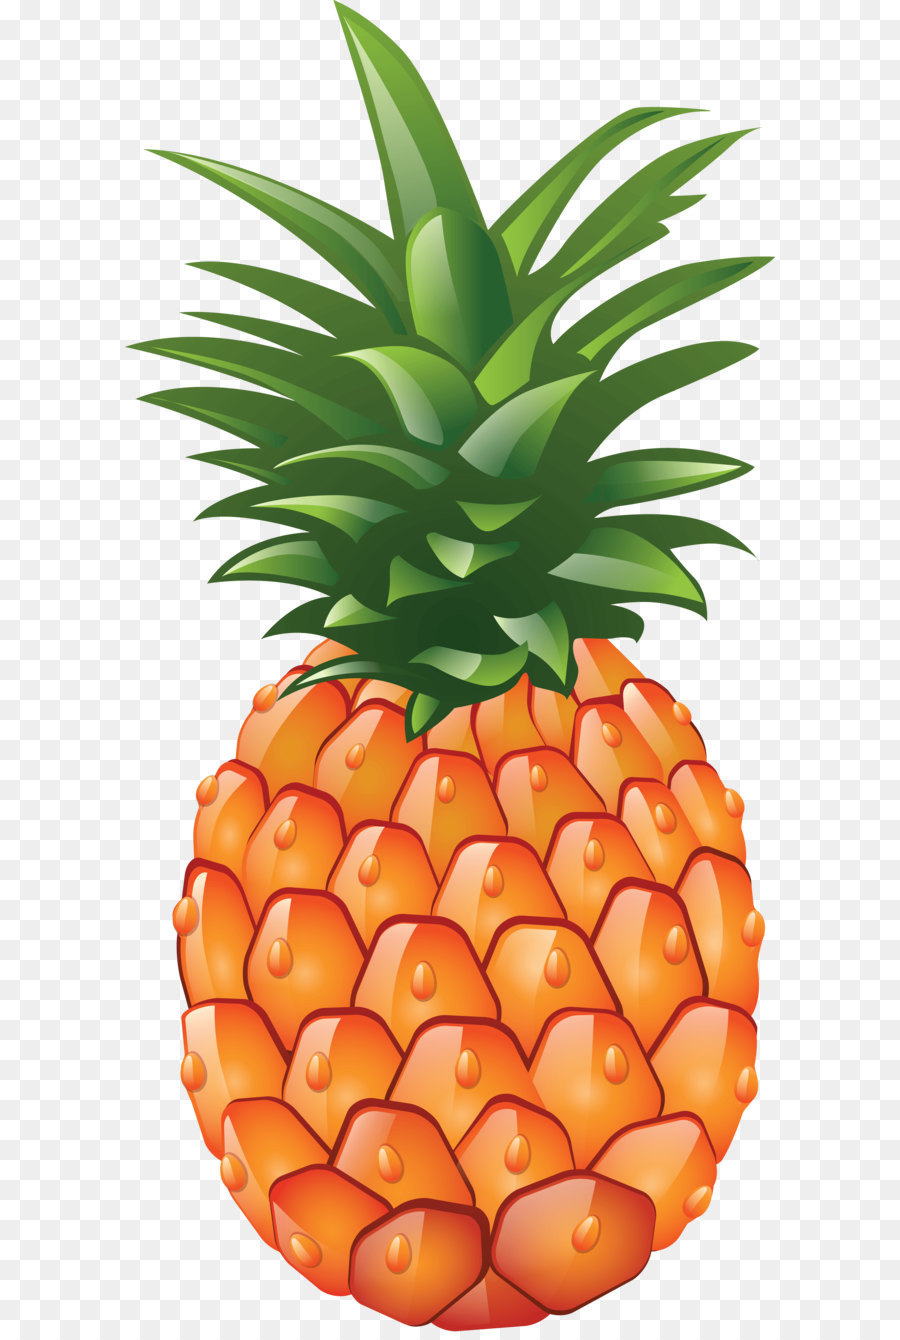 pineapple clip art pineapple png image download png download rh kisspng com clipart pineapple black and white pineapple clipart png